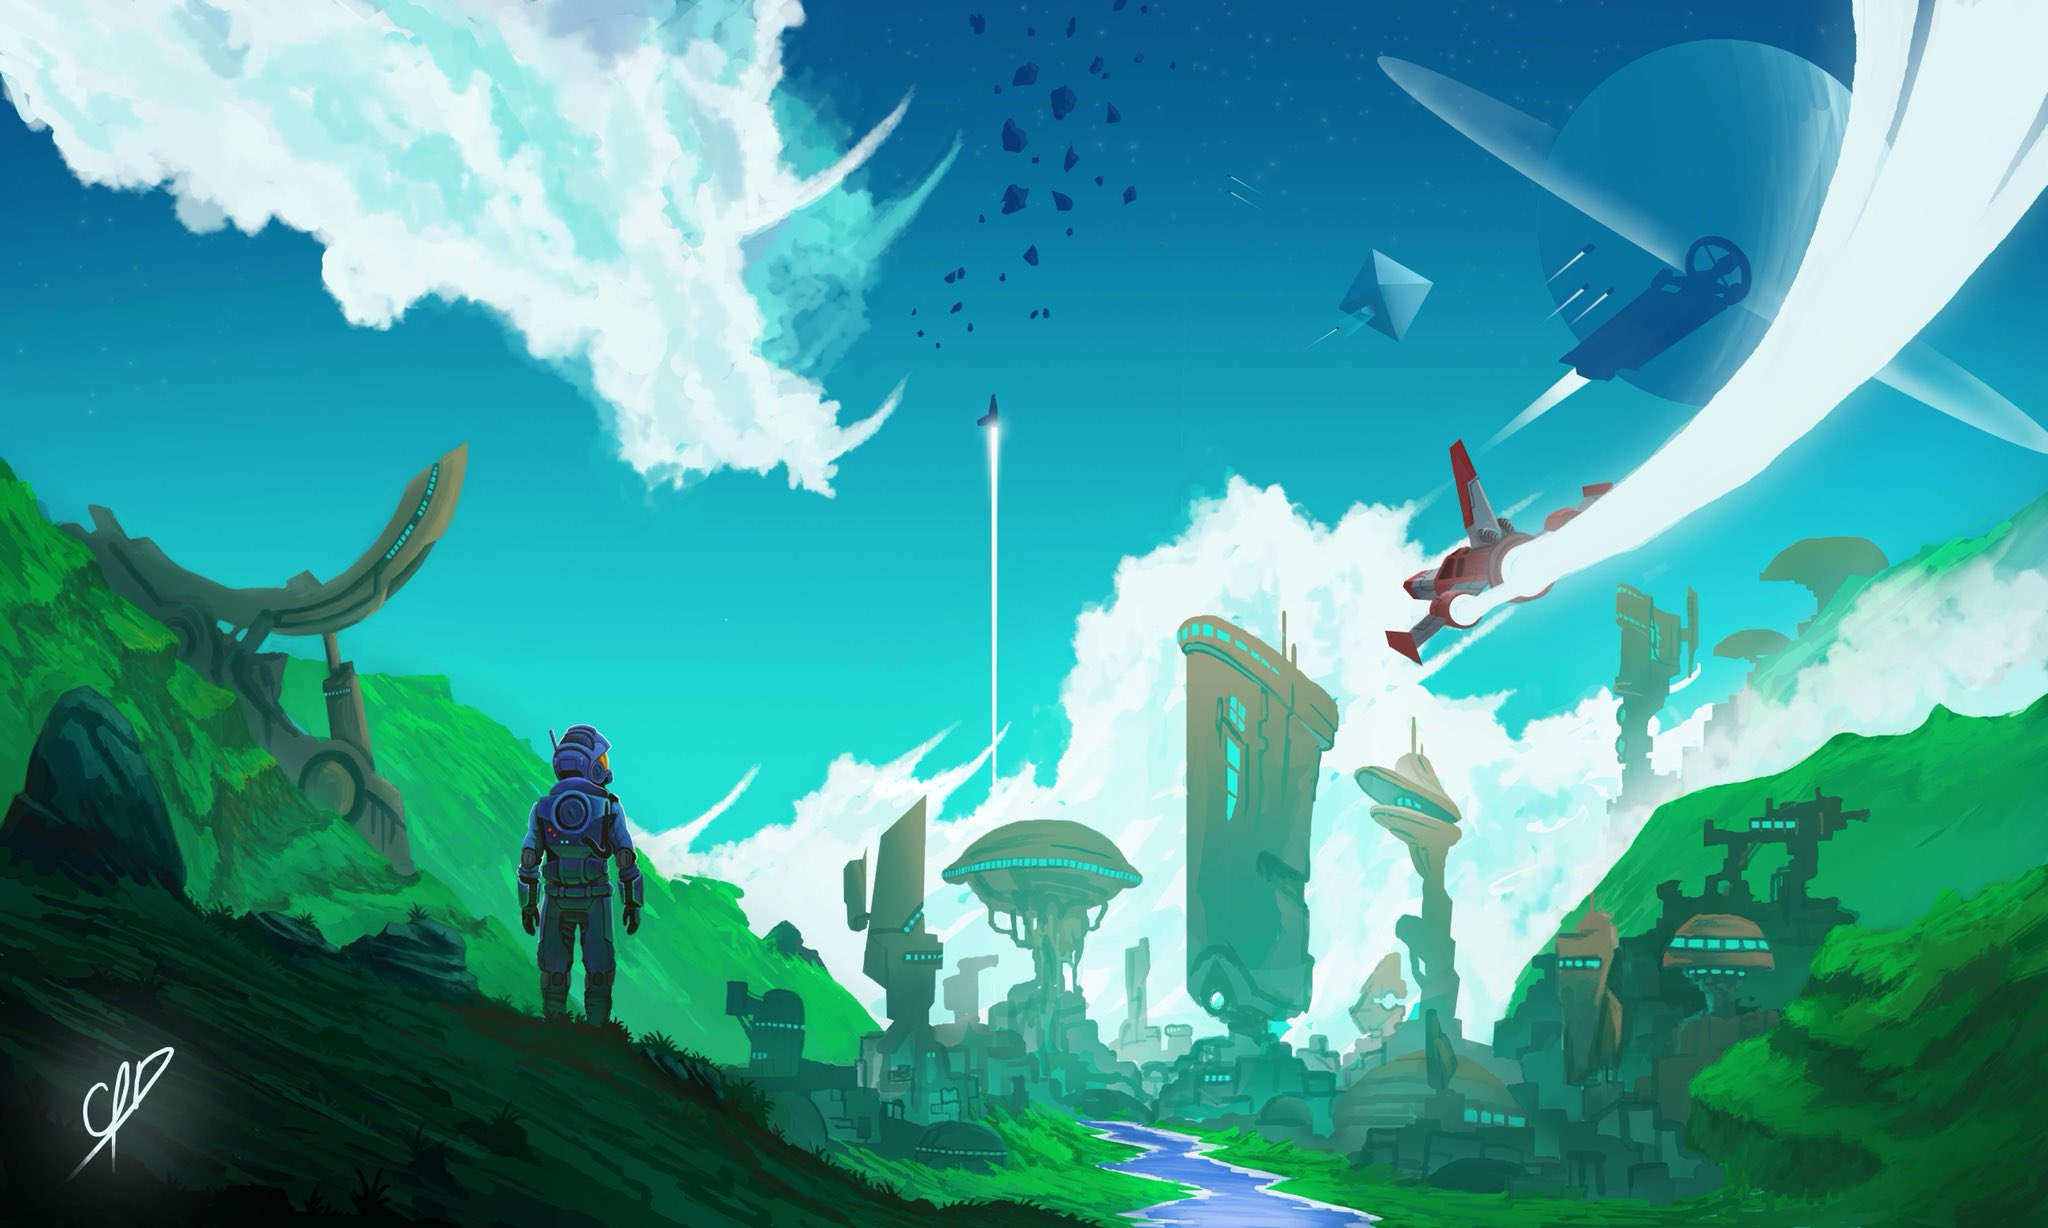 General 2048x1228 No Man's Sky planet space spaceship spacesuit clouds astronaut No Man's Sky NEXT sky fan art artwork science fiction video games rocket futuristic planetary rings